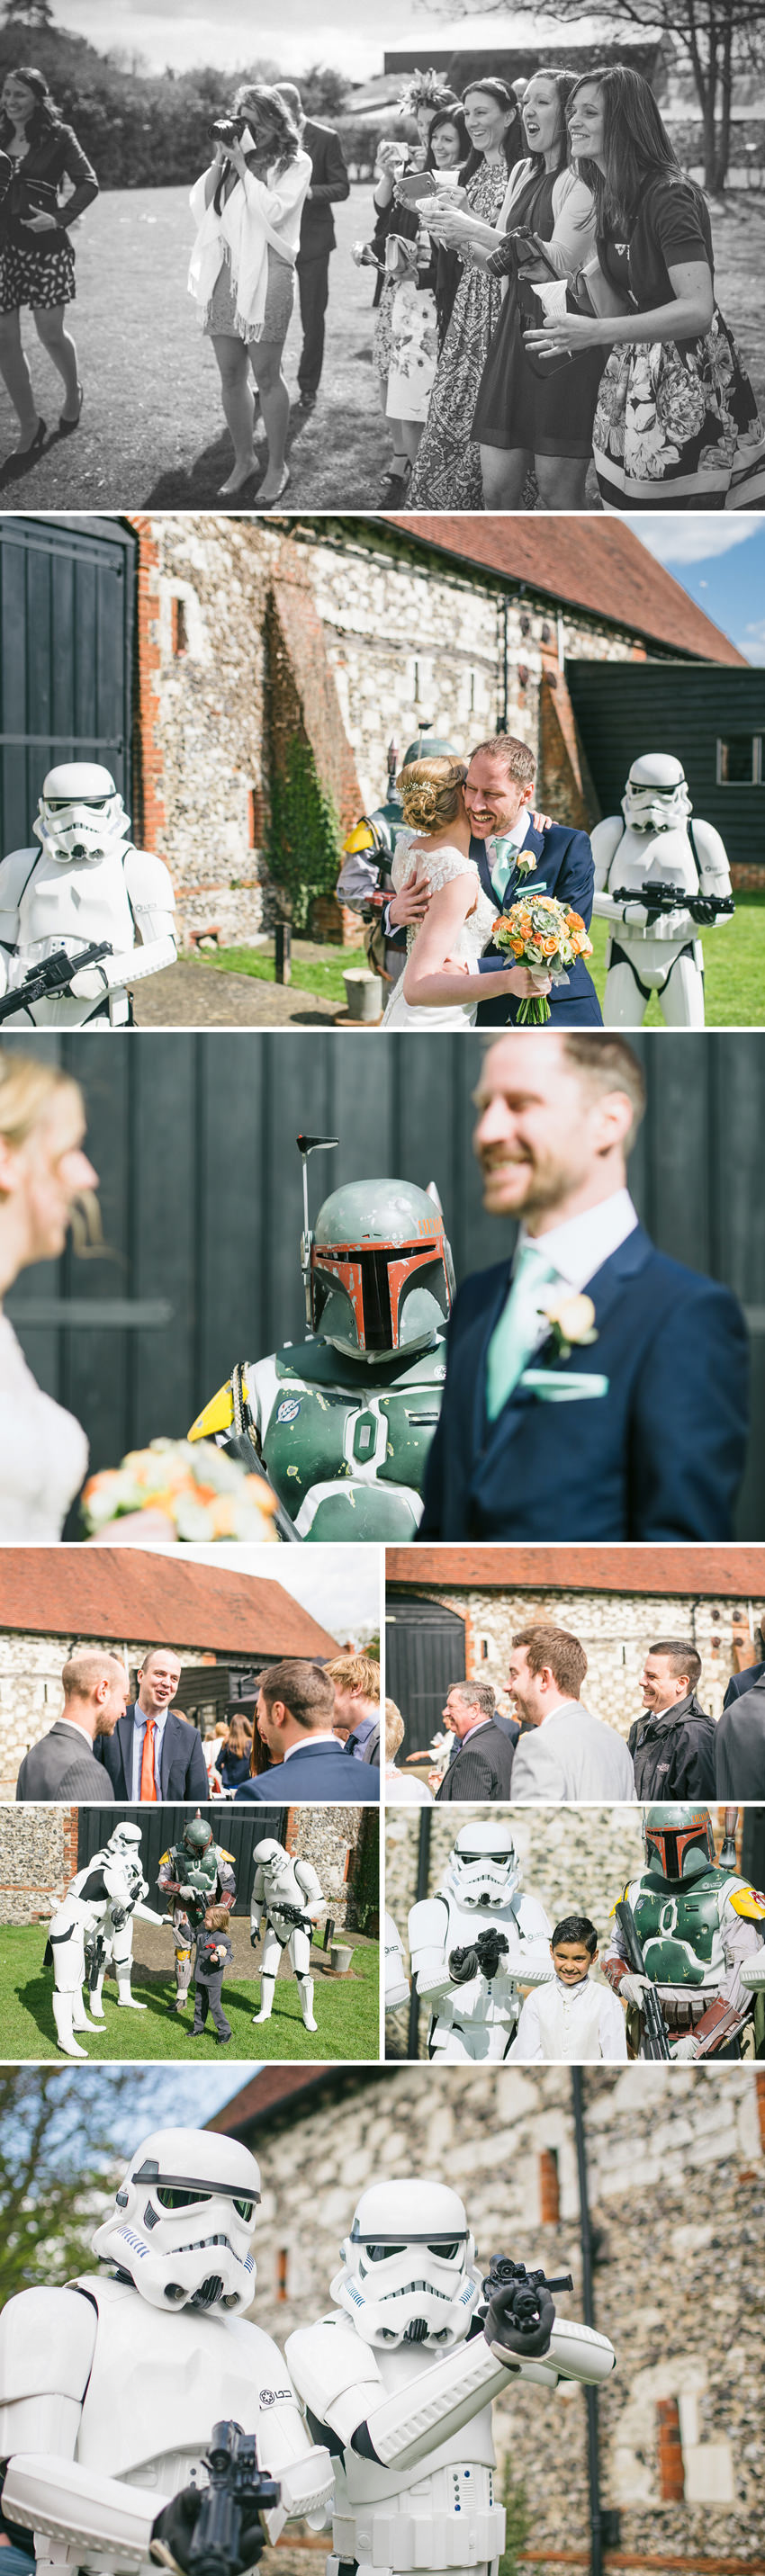 boba fett looks at bride and groom